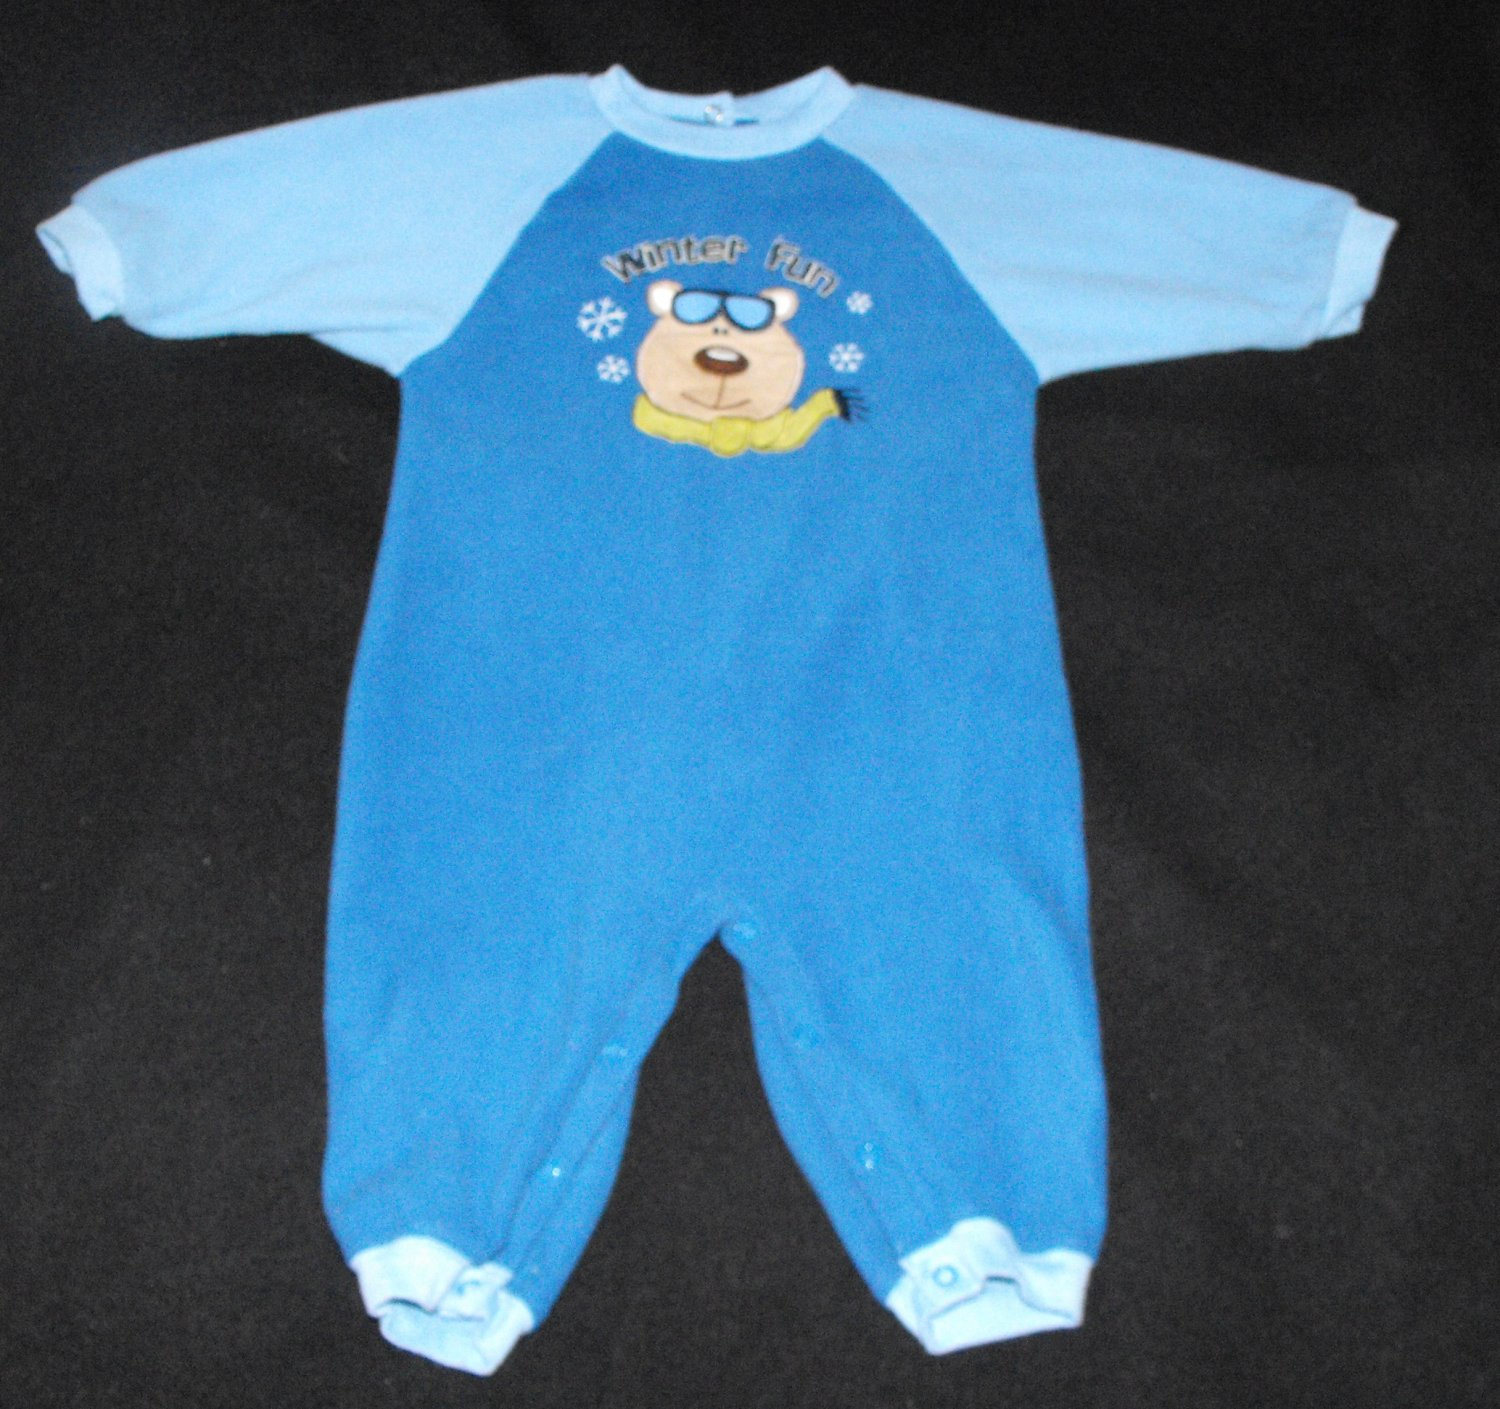 Okie Dokie Baby Boys 12 month Fleece Romper Outfit